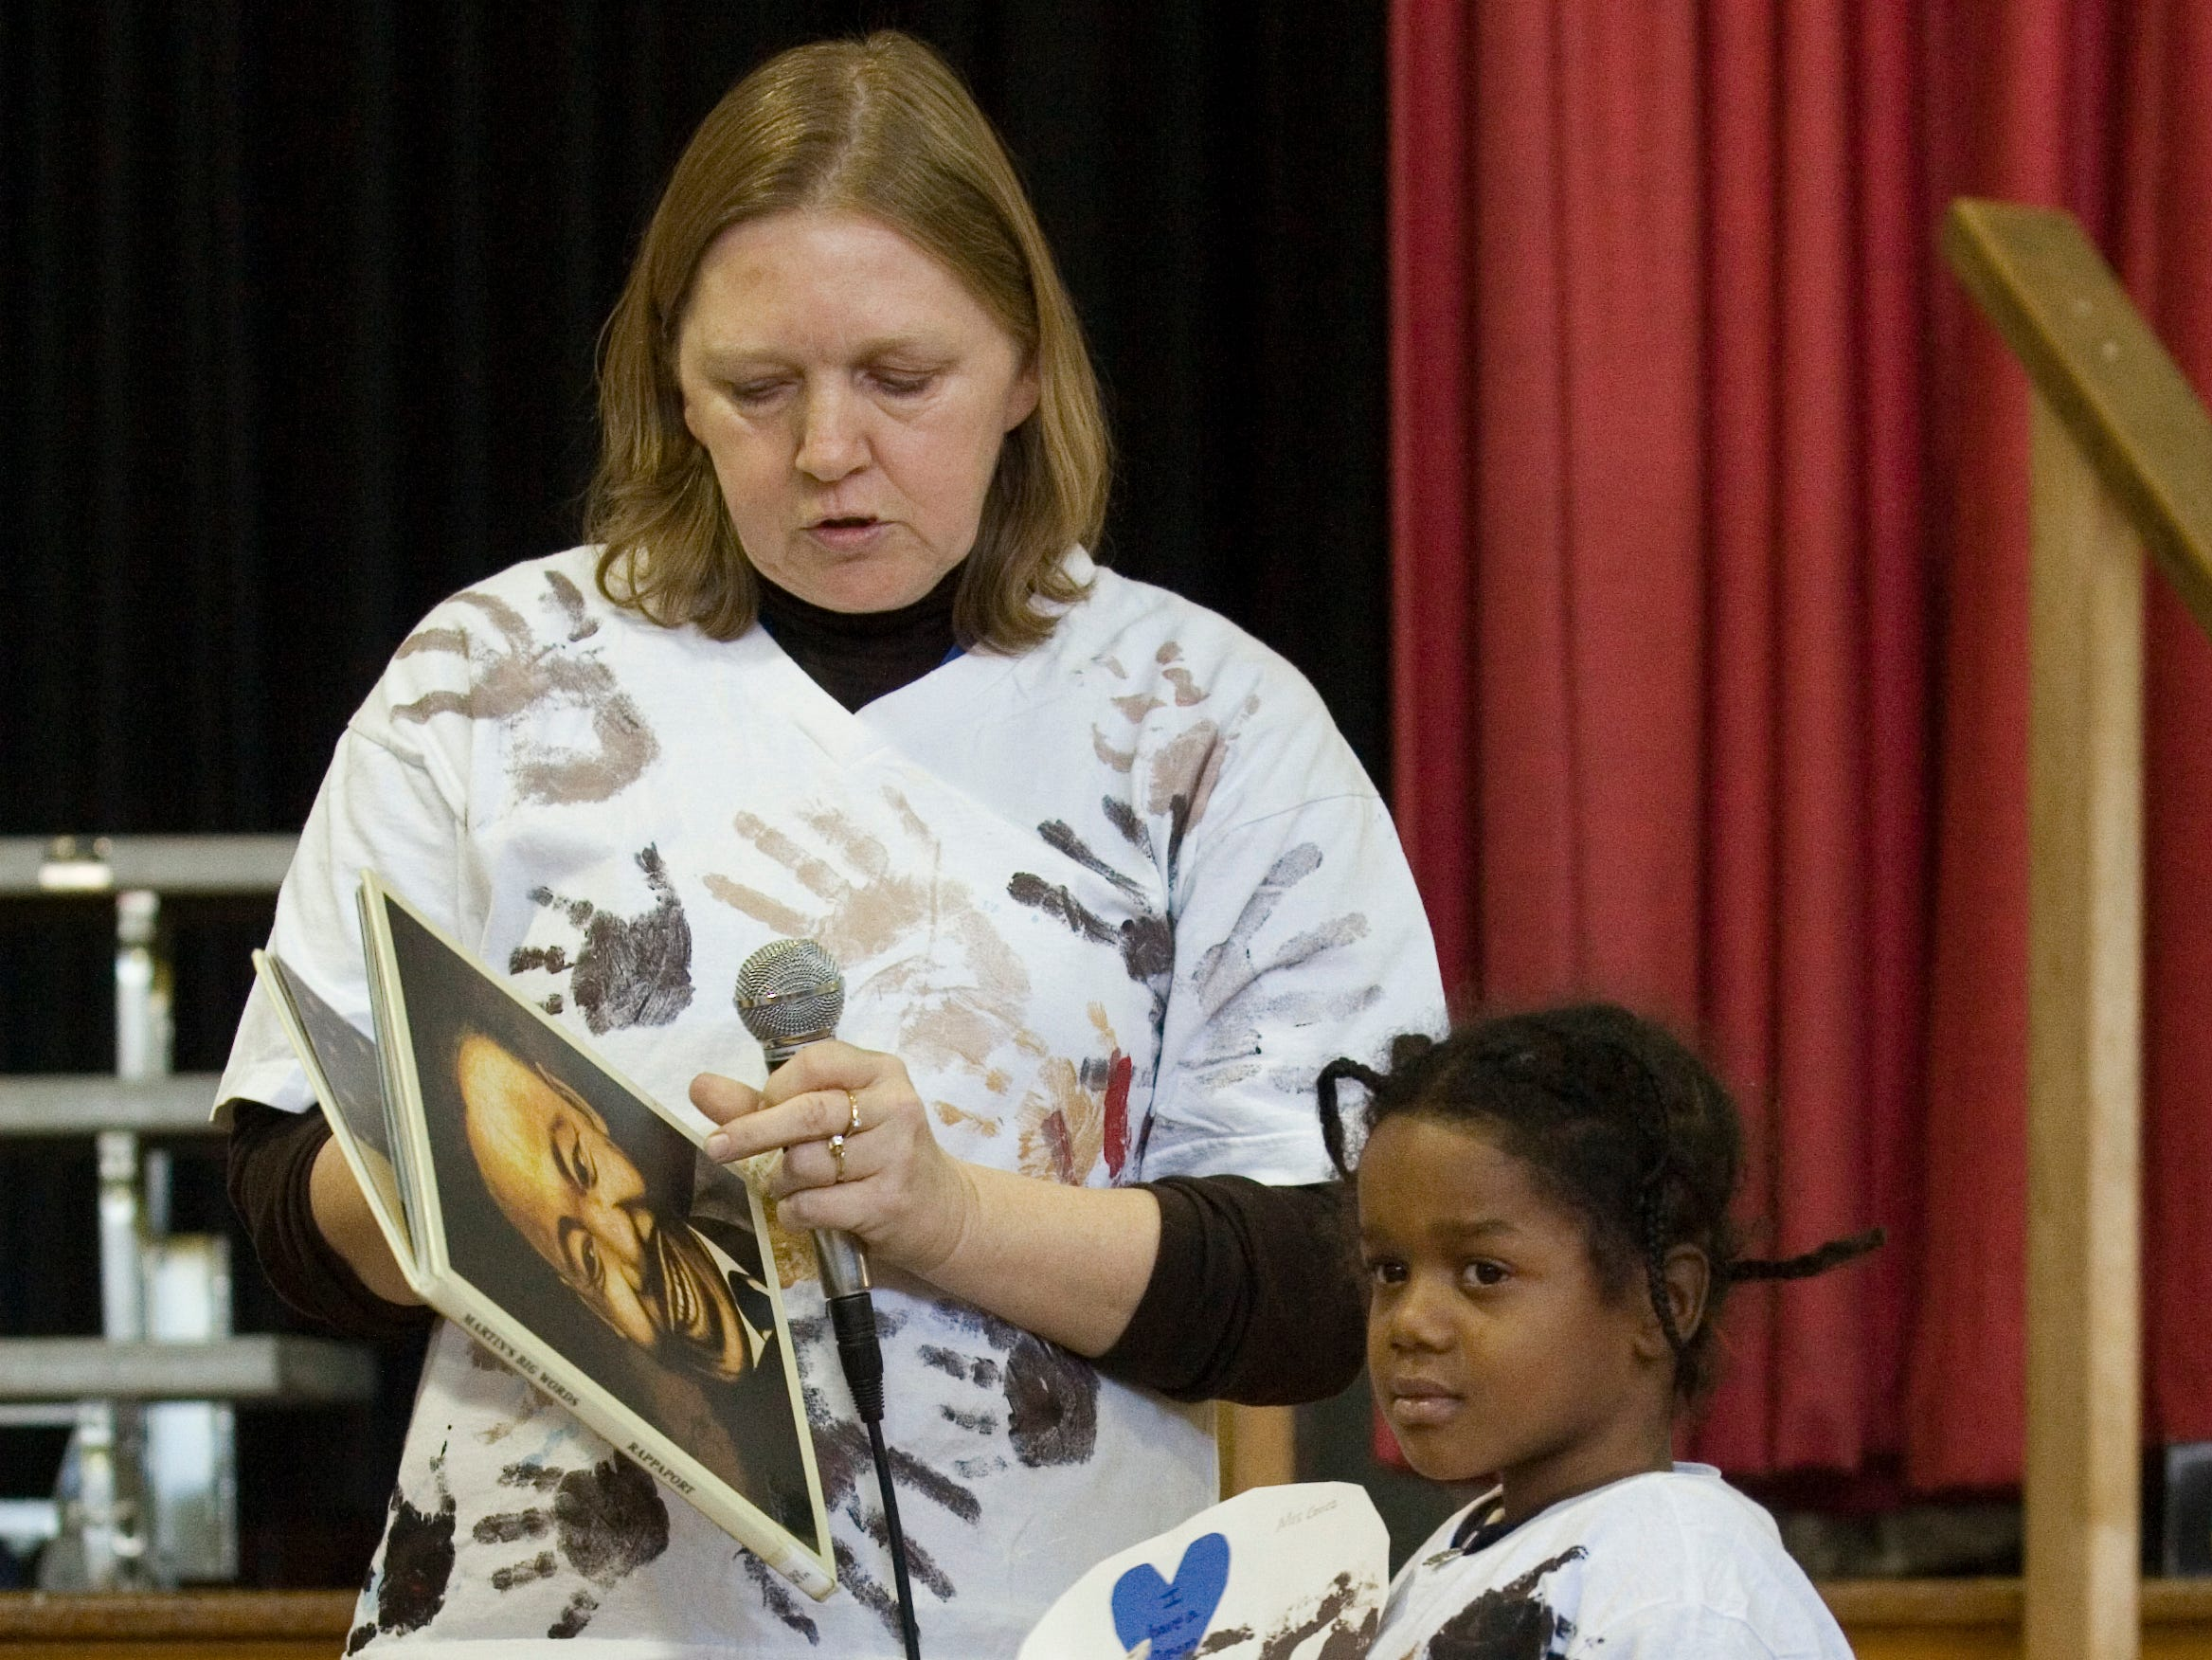 2009: Fassett Elementary School teacher Christina Cecce tals about the projects her students did in recognition of  Martin Luther King Jr. as pre-kindergarten student Jas'zon Campbell displays a drawing with different colored hand prints on it.